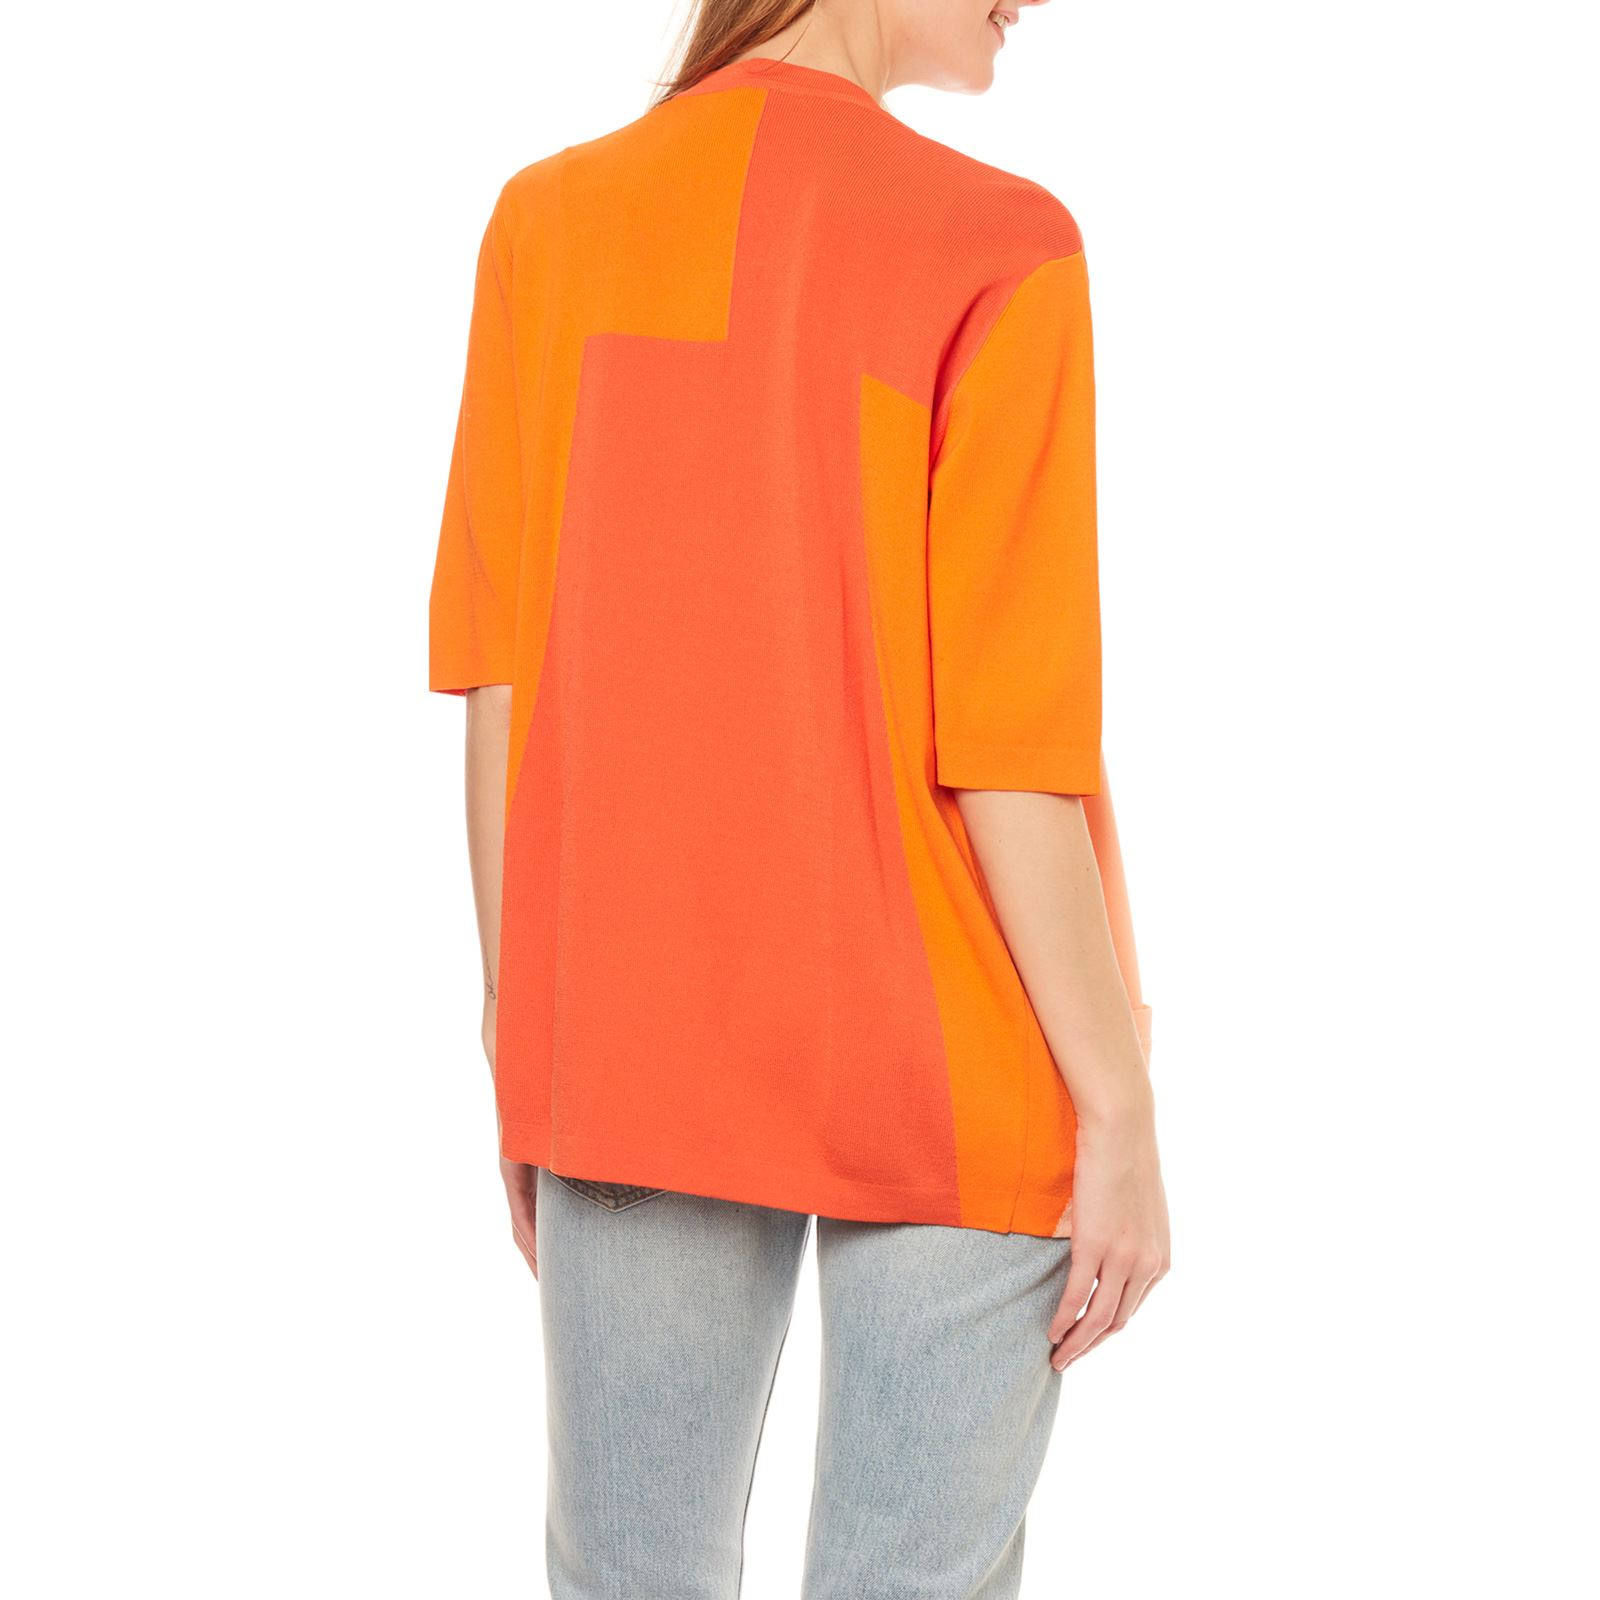 Benetton Benetton Orange Orange Cardigan Cardigan Benetton wgUdHwq